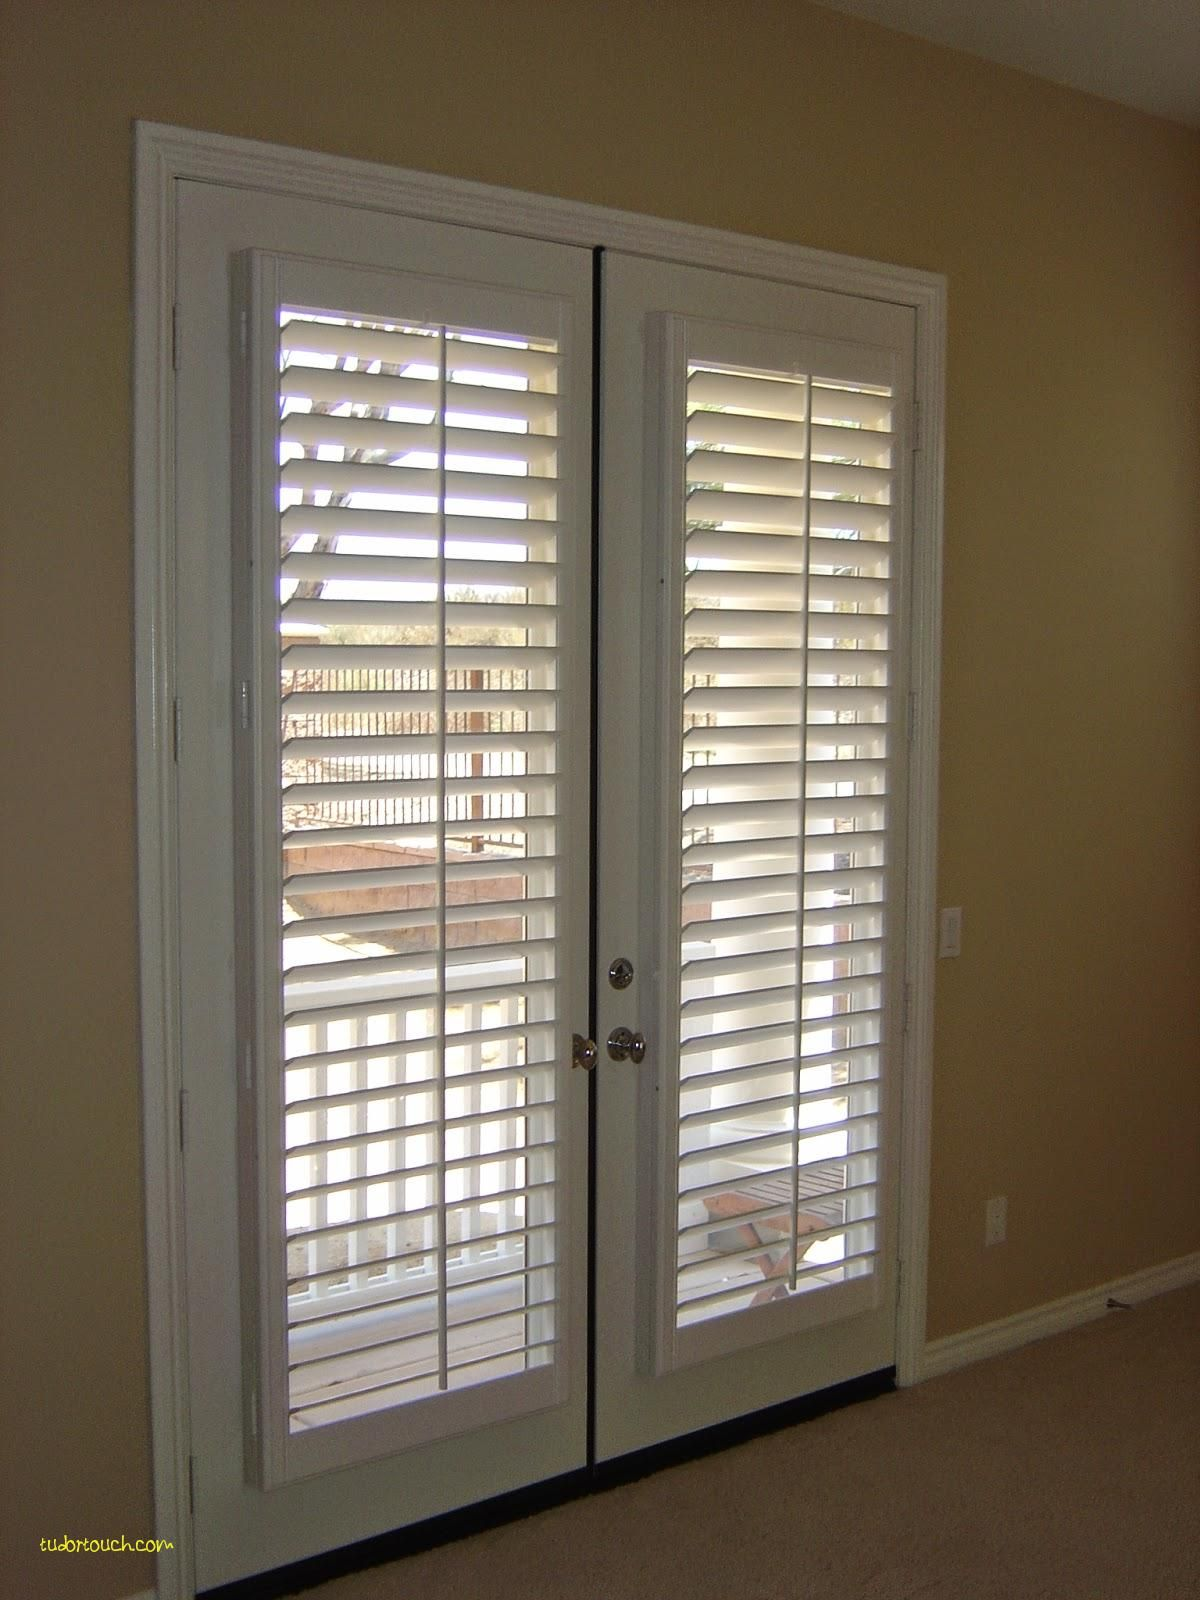 Pin By Arnisse Washington On French Door Window Treatments Patio Door Blinds French Doors Interior French Door Window Treatments Venetian blinds are horizontal slats that allow you to control the amount of light that passes find blinds between the glass exterior doors at lowe's today. patio door blinds